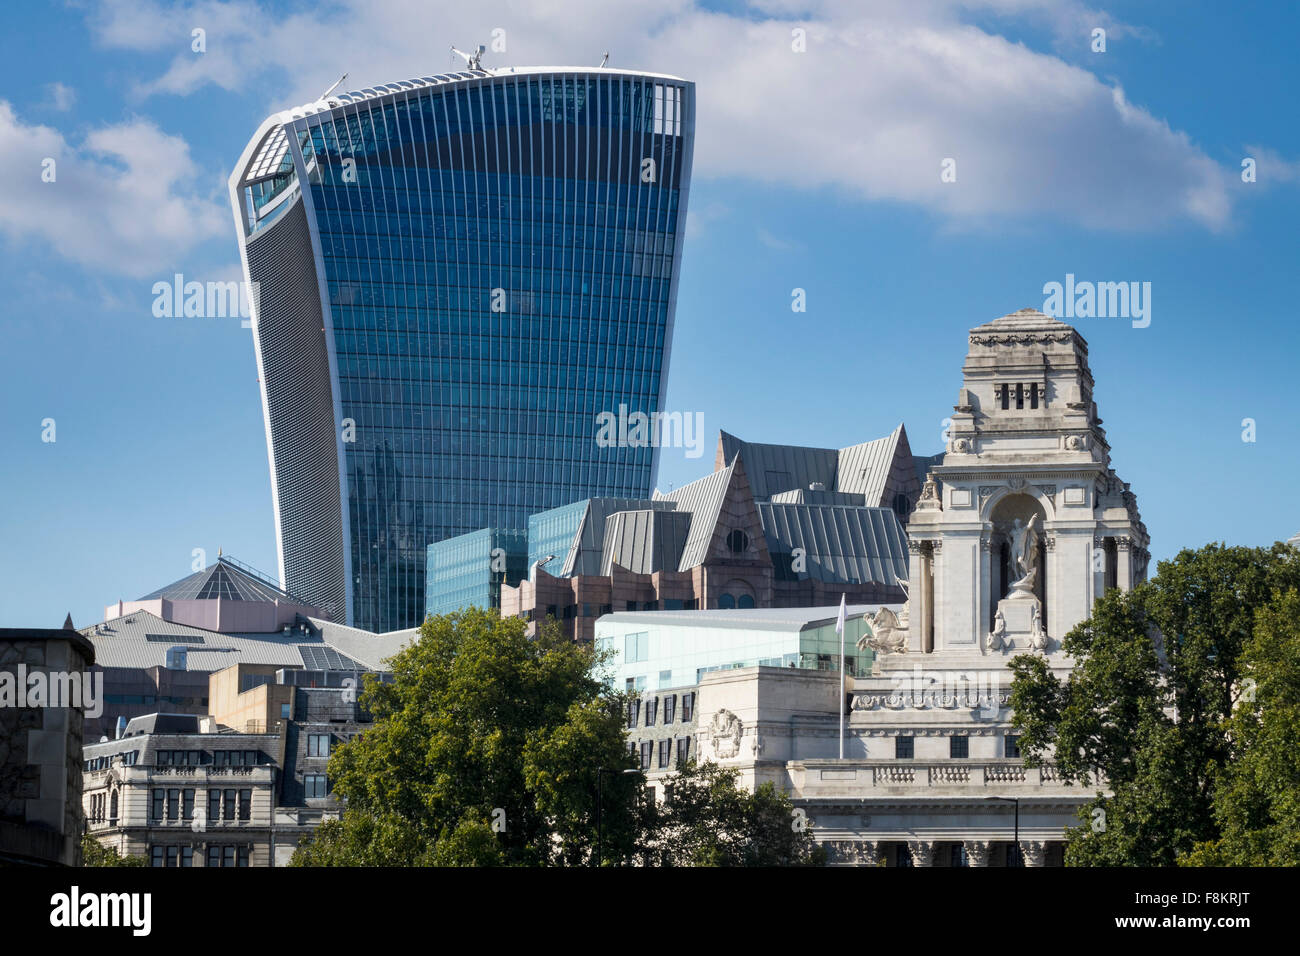 Walkie Talkie building, London, England, UK - Stock Image